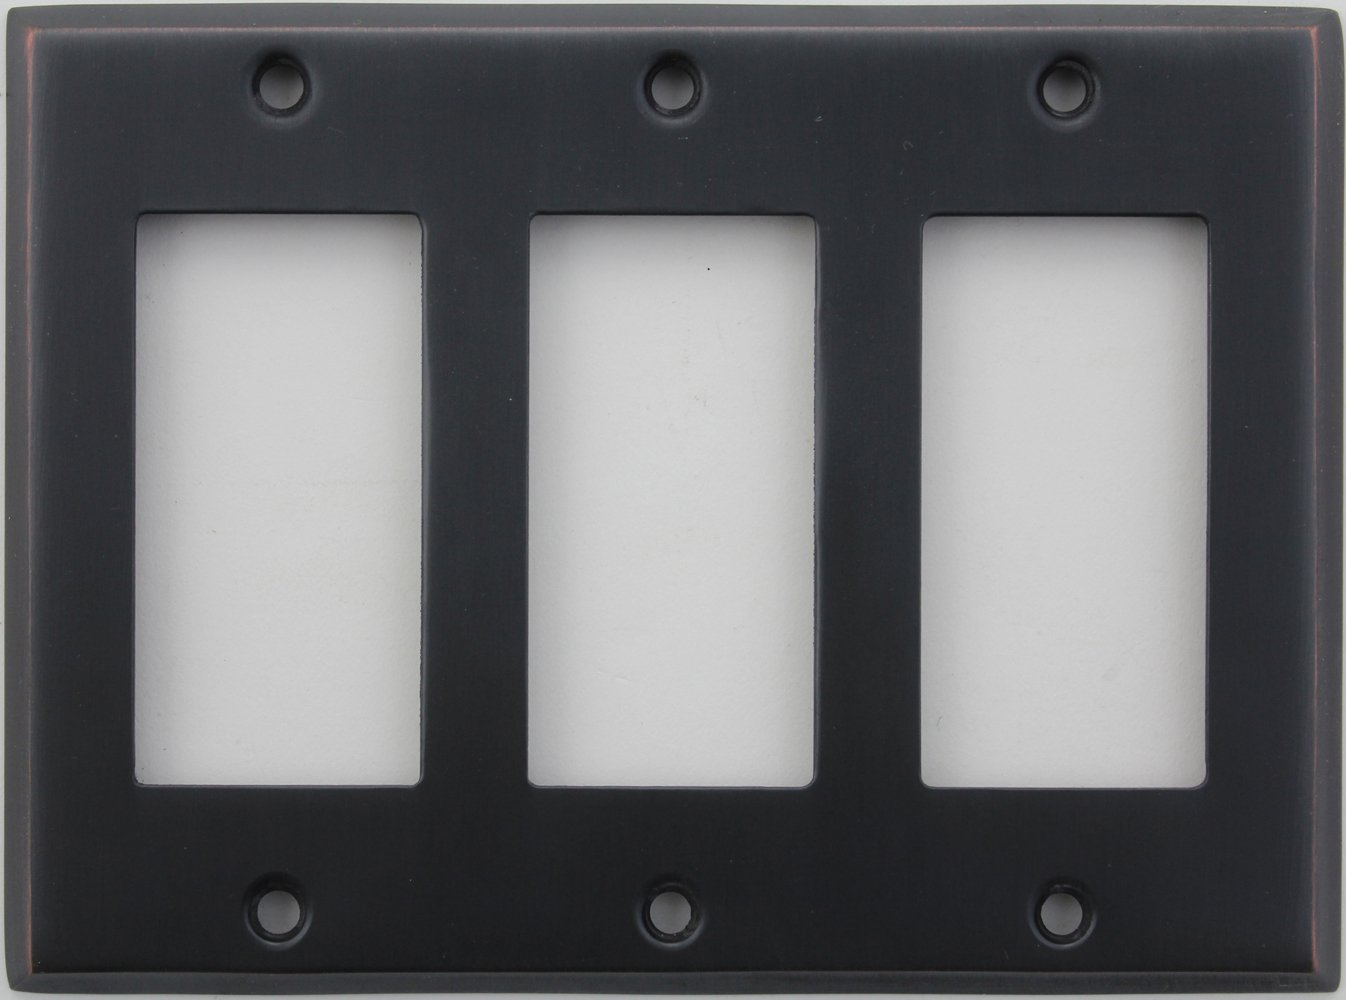 Classic Accents Stamped Steel Oil Rubbed Bronze Three Gang GFI/Rocker Opening Wall Plate